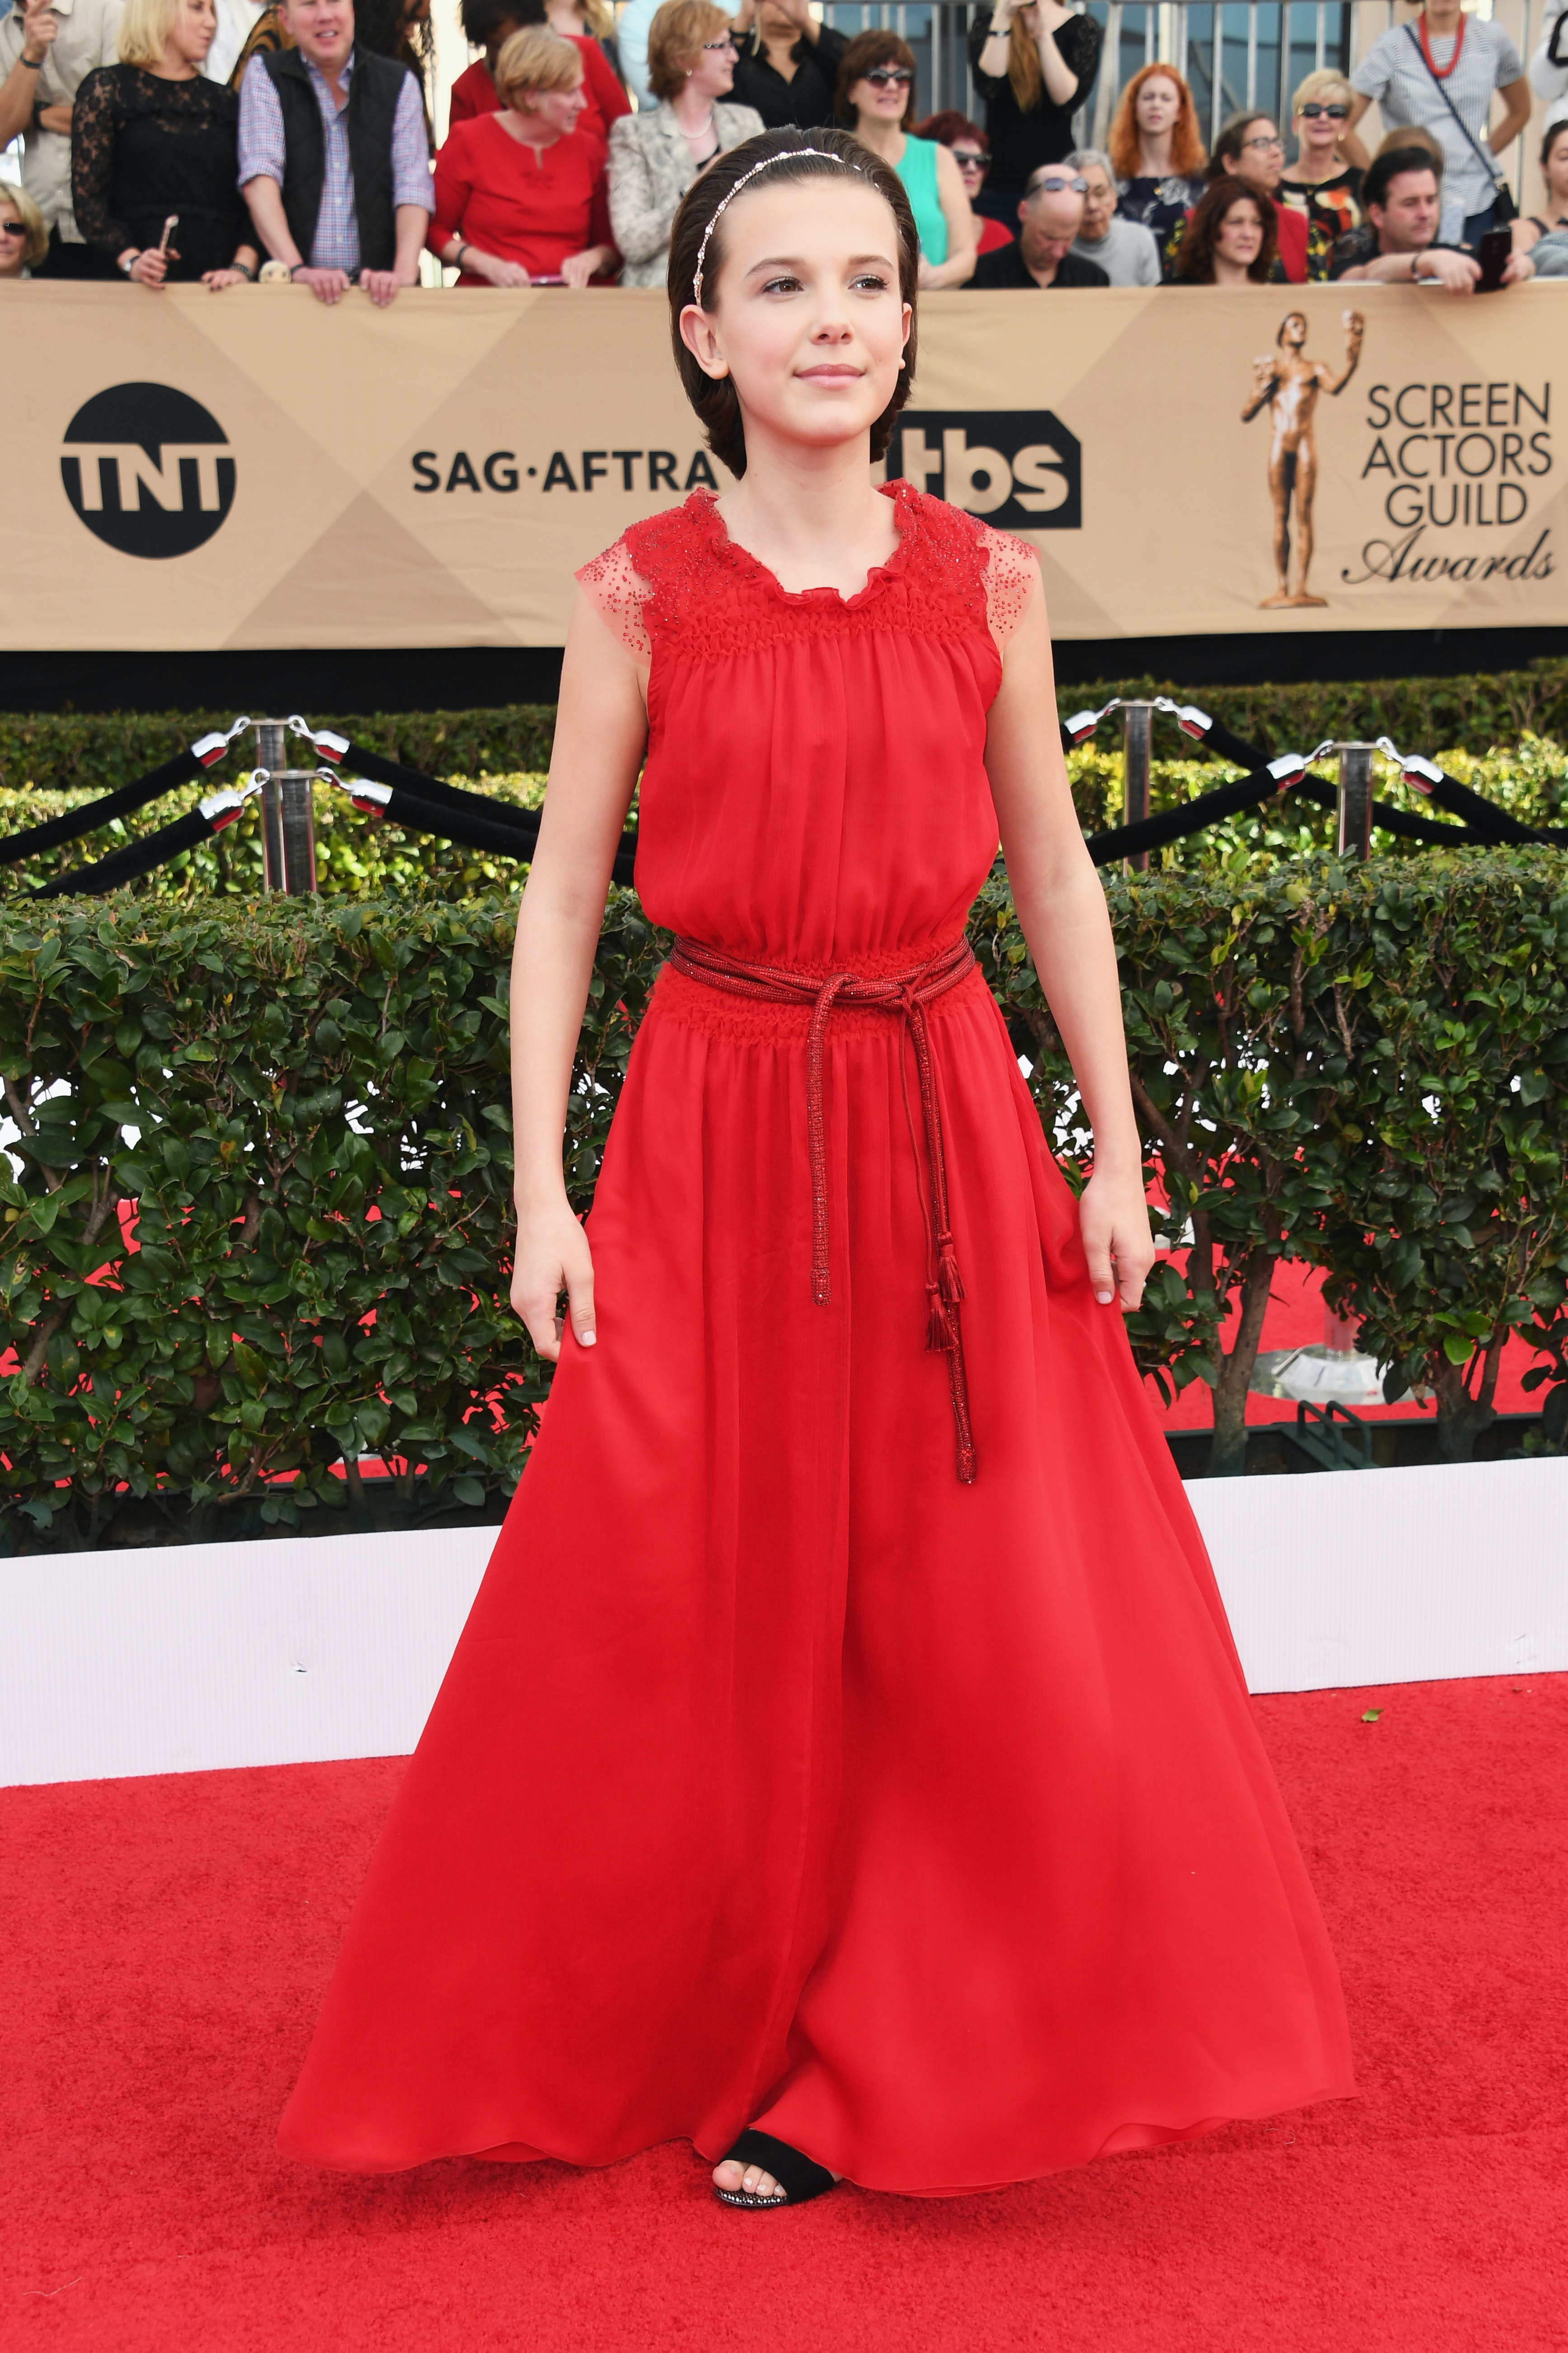 All The Looks At 2017 Sag Awards So You Don T Miss A Single Gown Photos